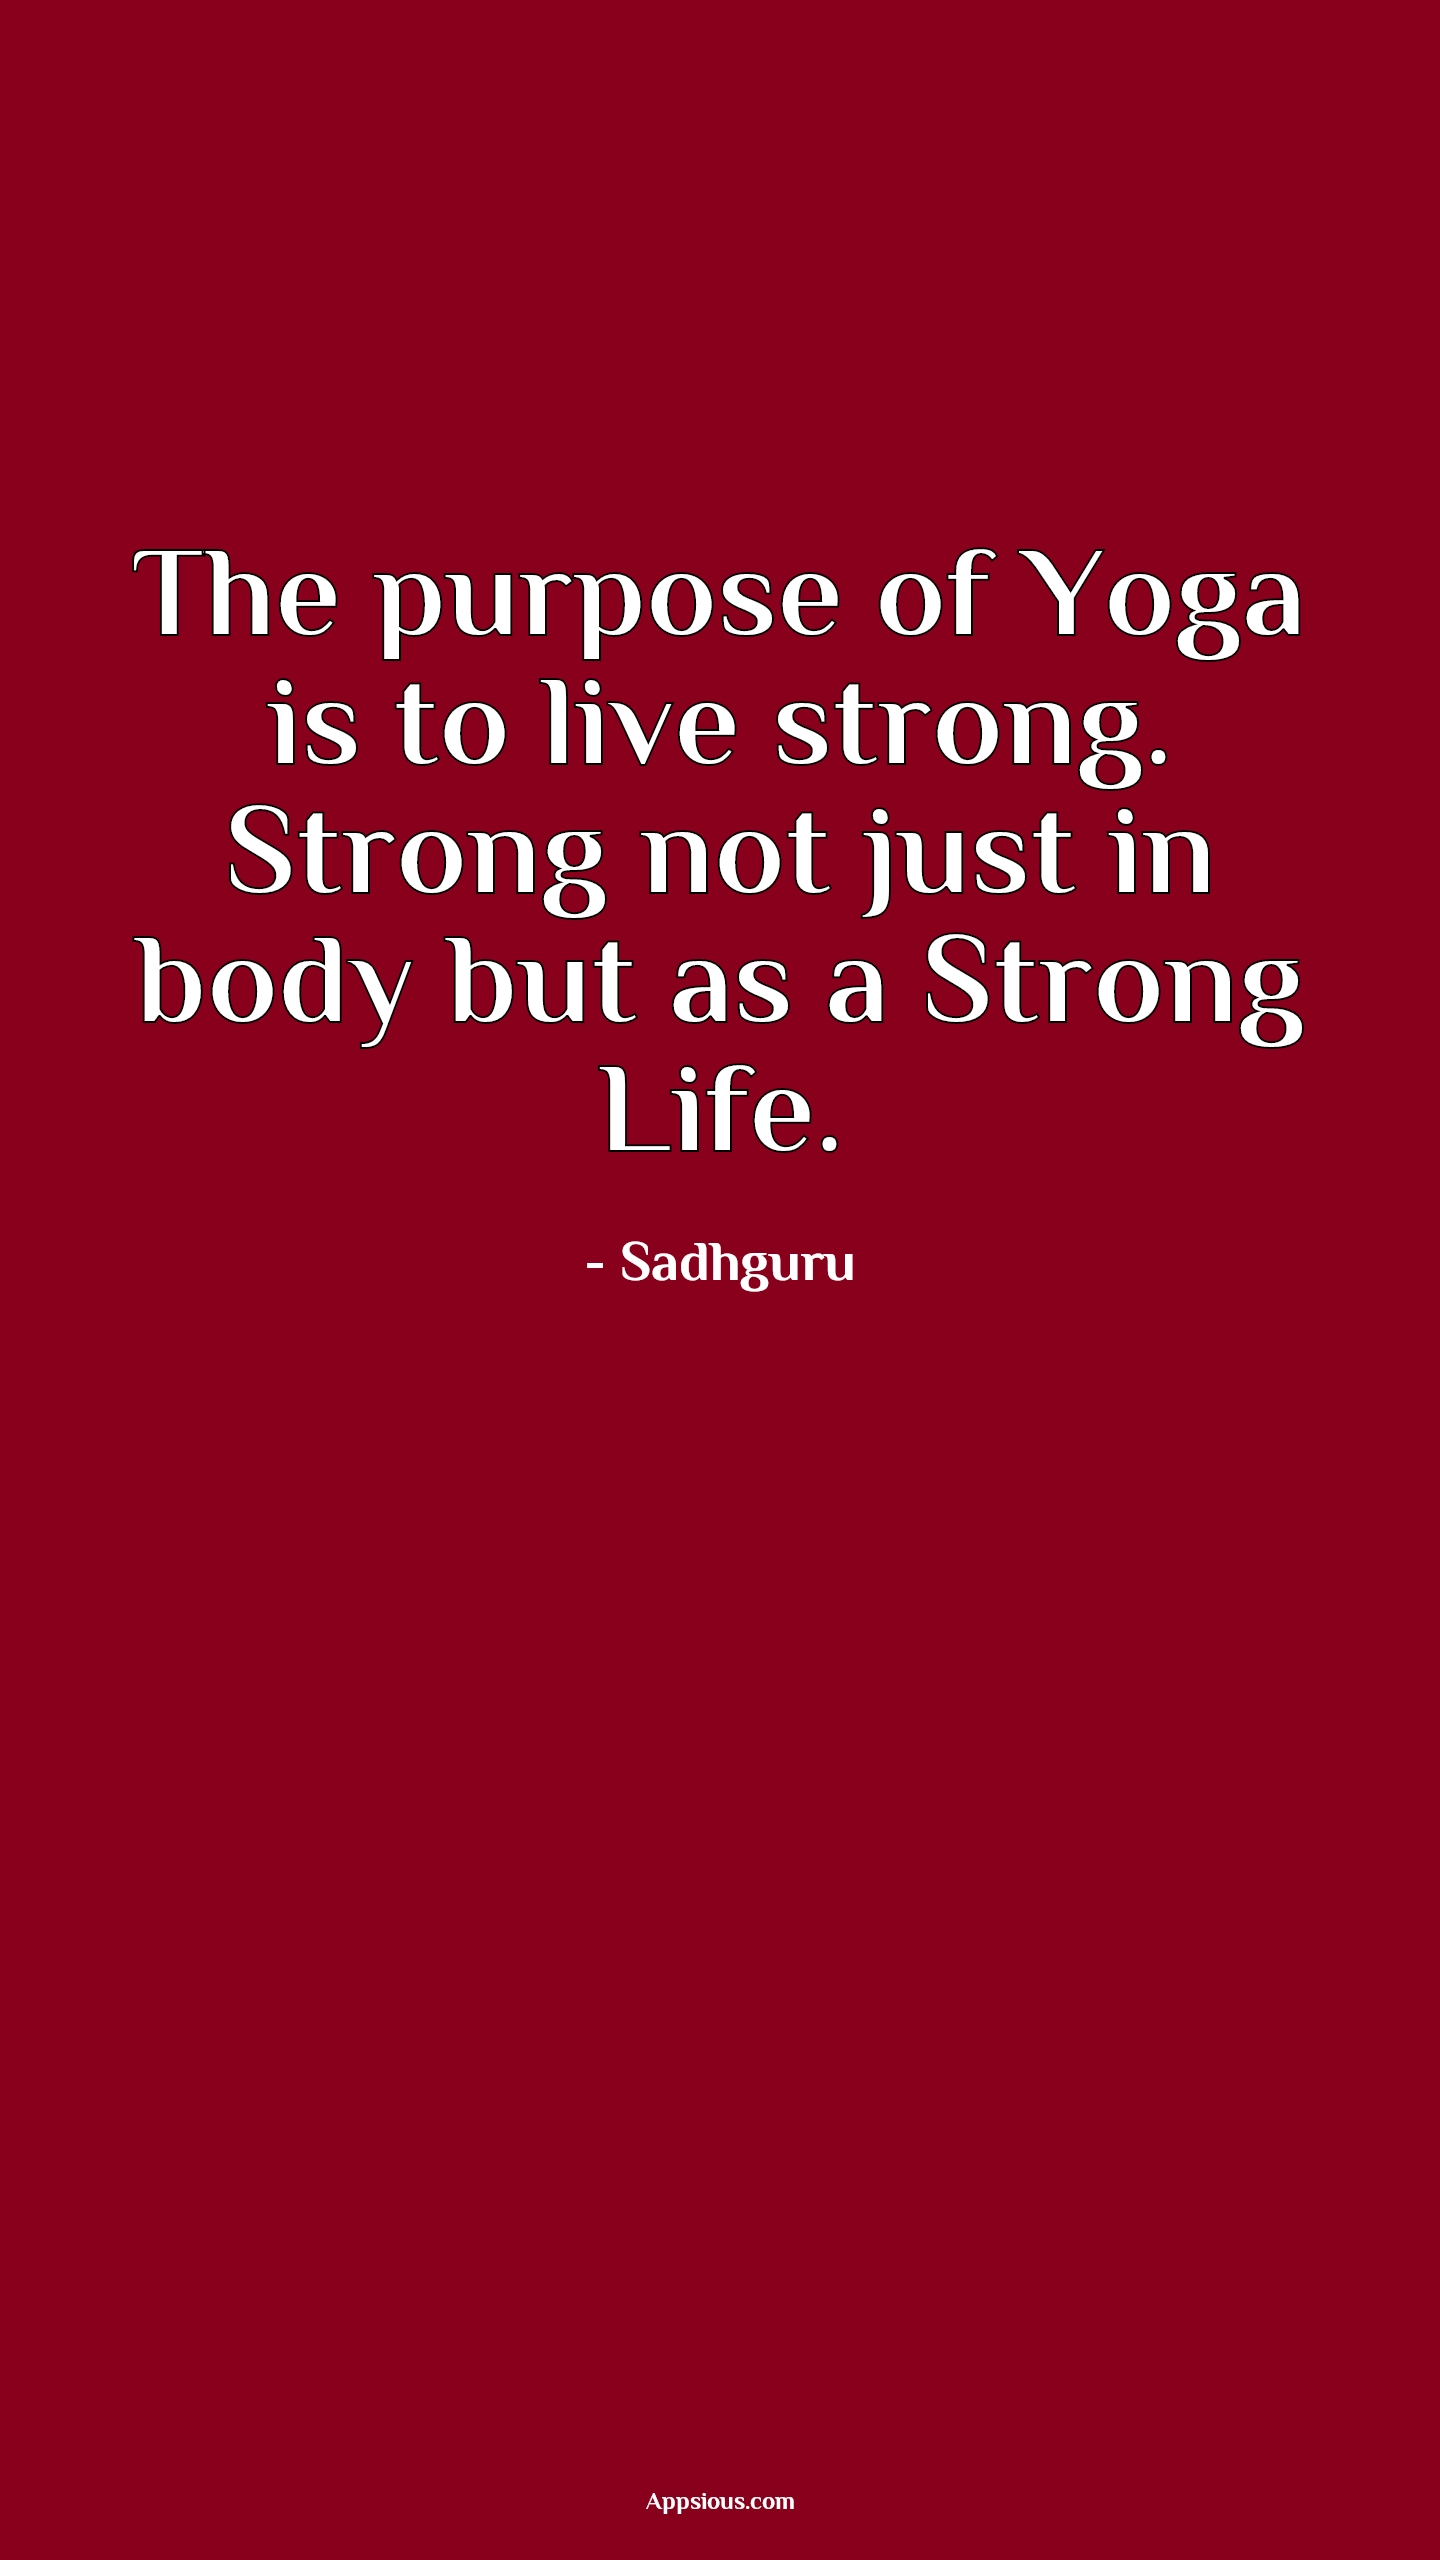 The purpose of Yoga is to live strong. Strong not just in body but as a Strong Life.